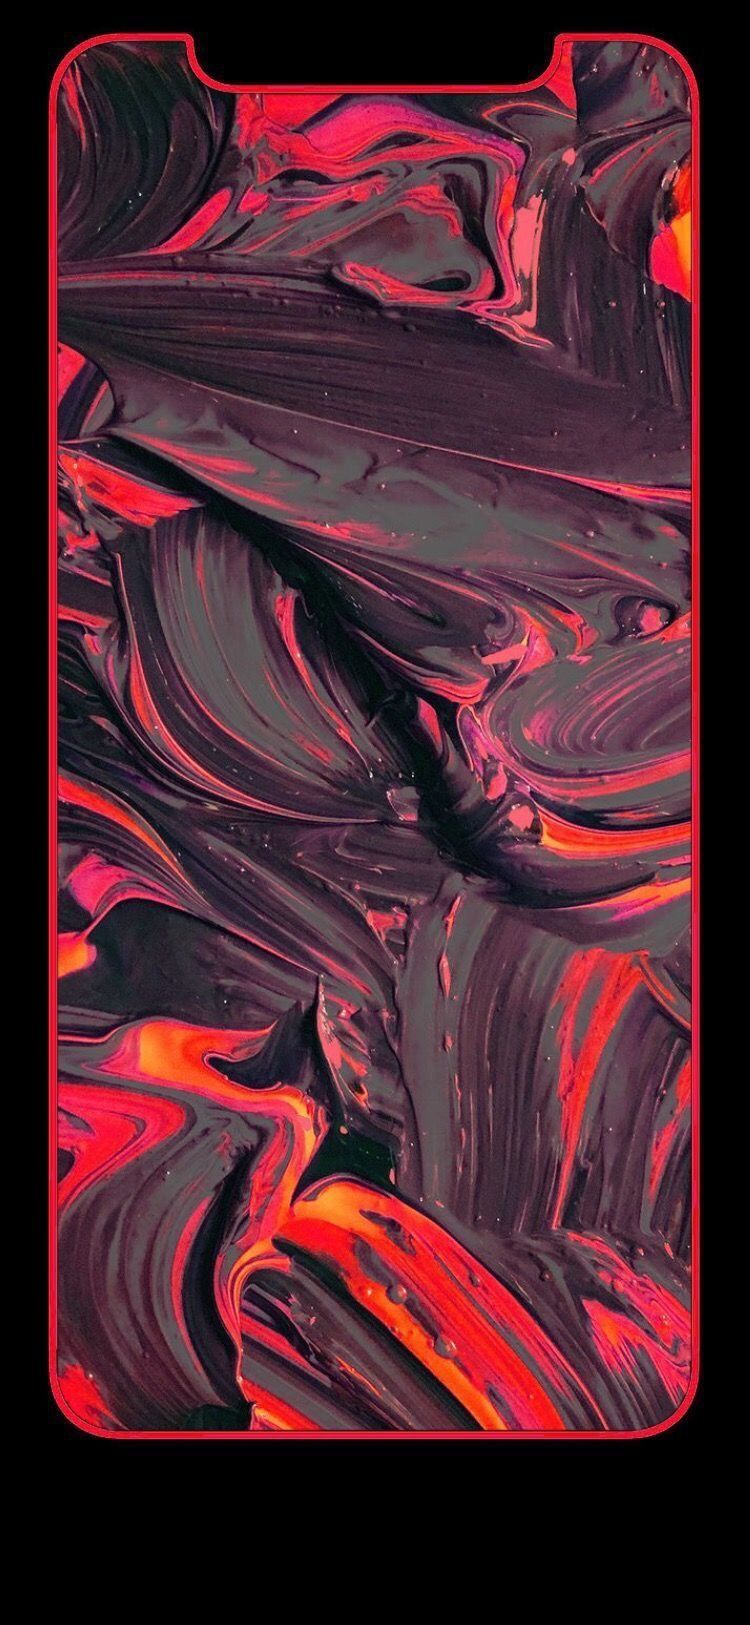 Wallpapers Iphone Xr Iphone Wallpapers Xr Landscape Wallpaper Xr Wallpaper Nature Wallpaper